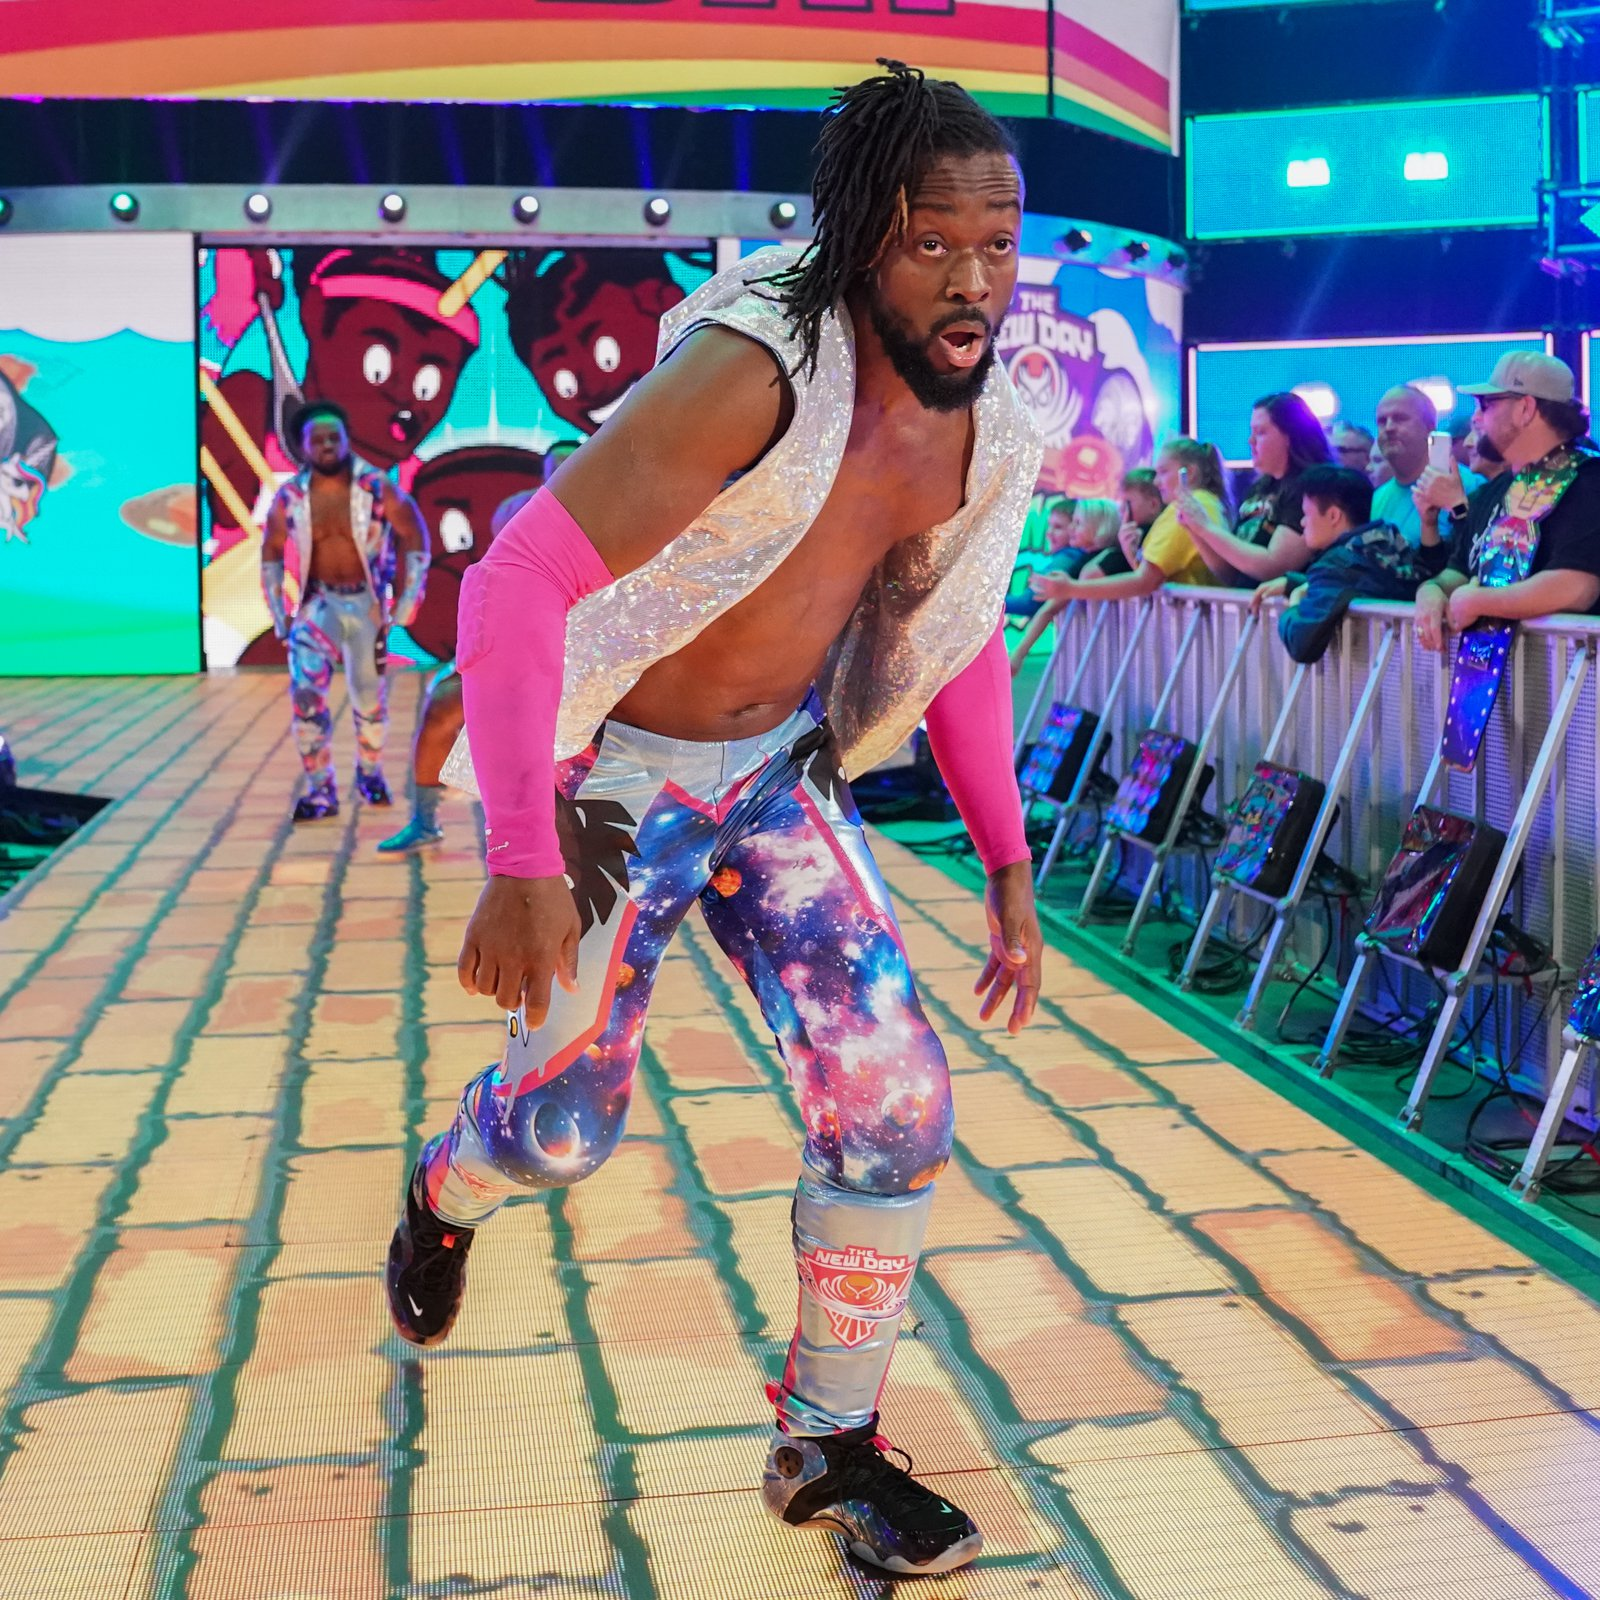 Kofi bounds to the ring ready to attempt to run the Gauntlet.